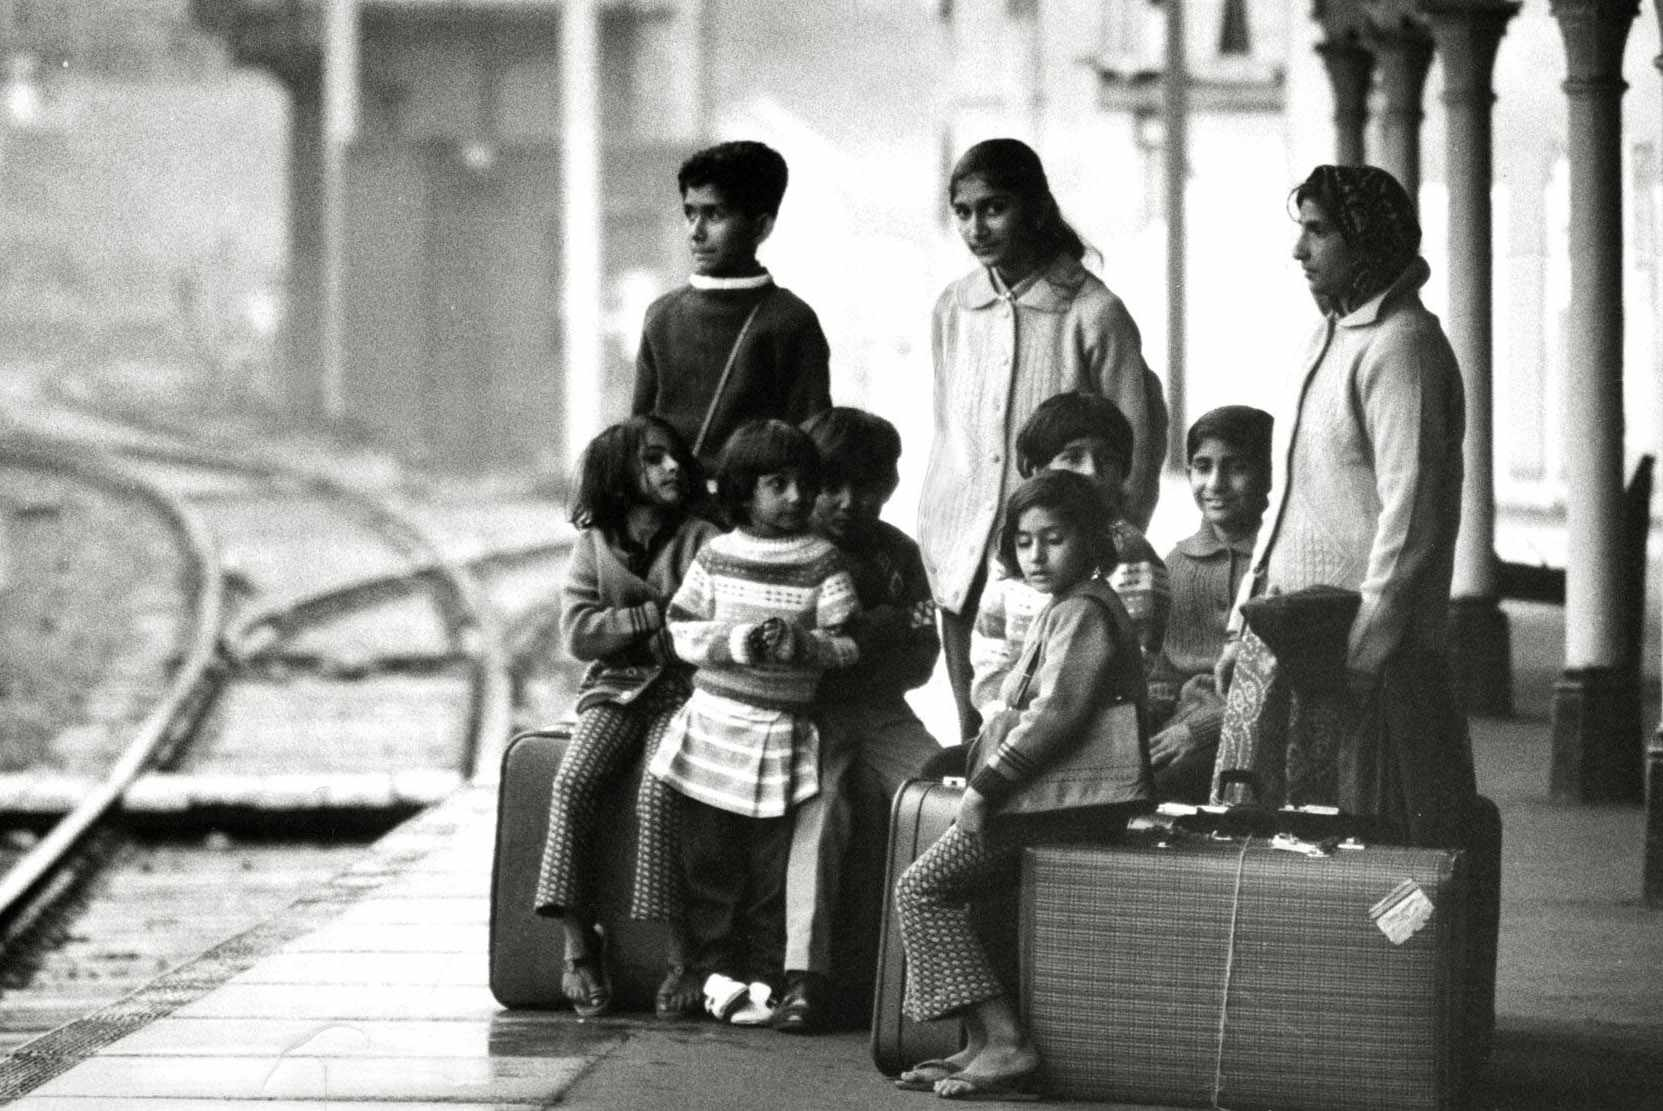 In a photograph taken at Bishop's Stortford railway station in Hertfordshire, 1972, resettled Ugandan Asians wait for the train that will take them to their new home. (Photo by Alamy)